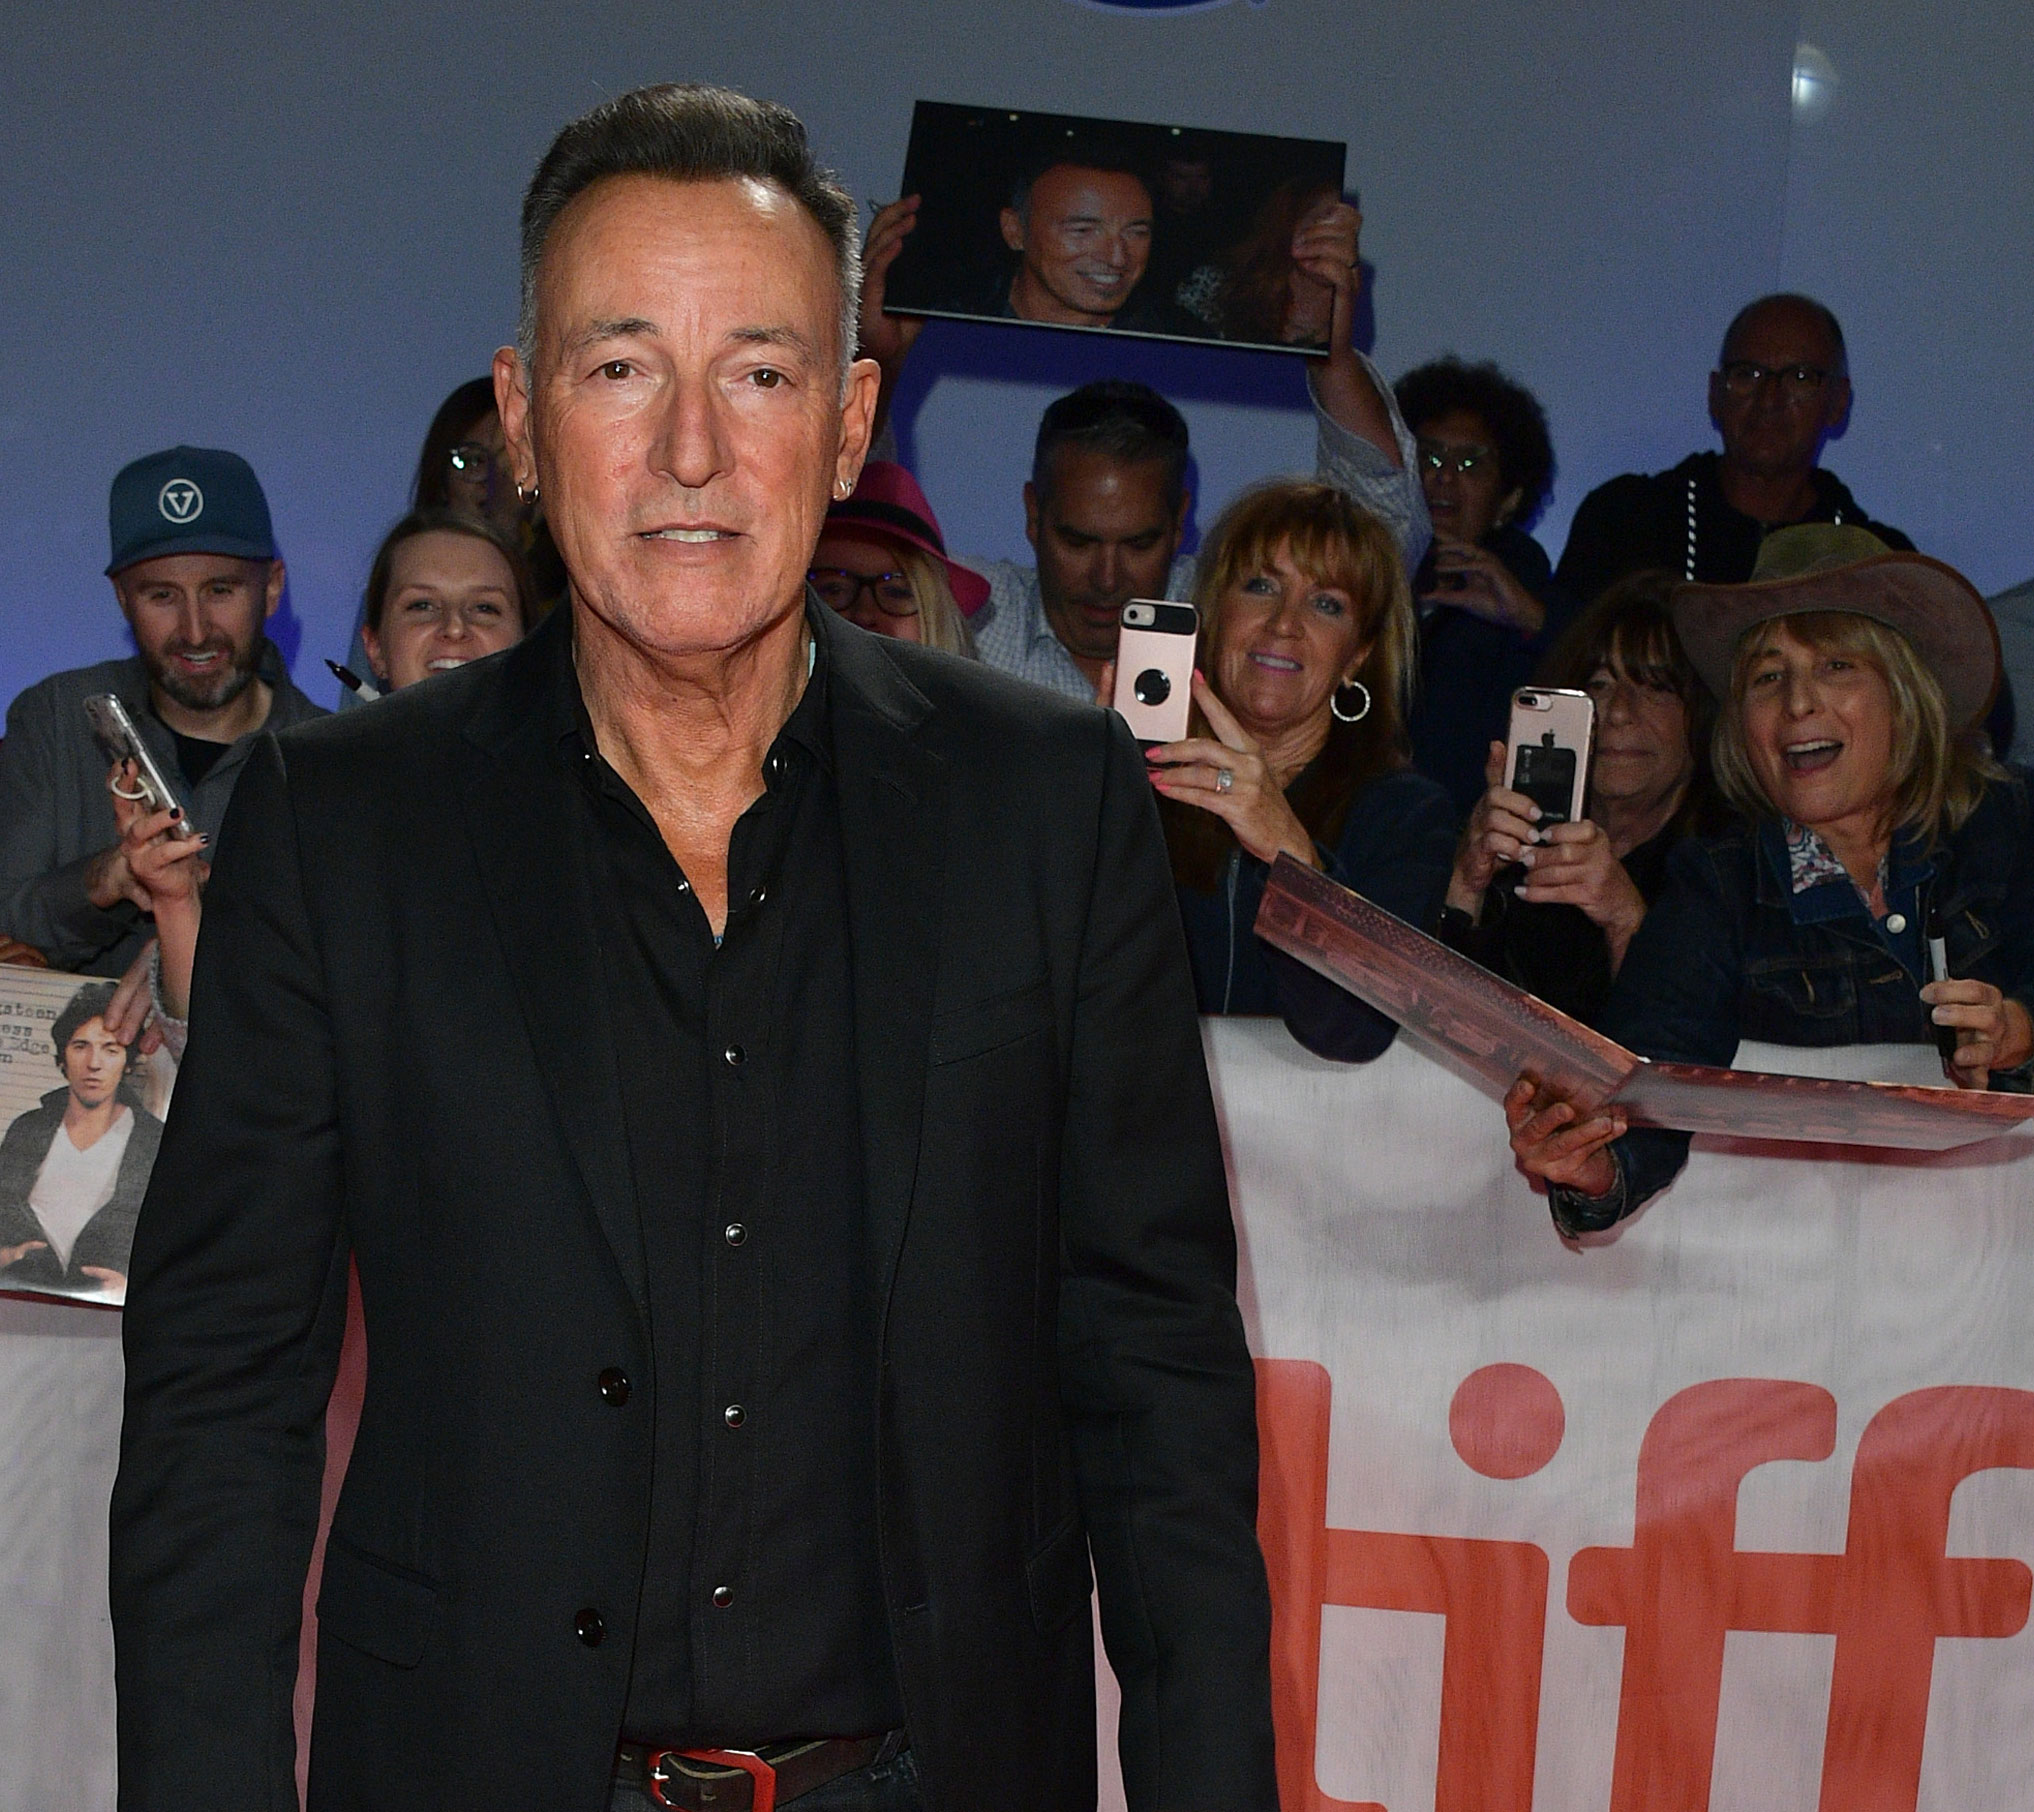 Photo of Bruce Springsteen at TIFF 2019.